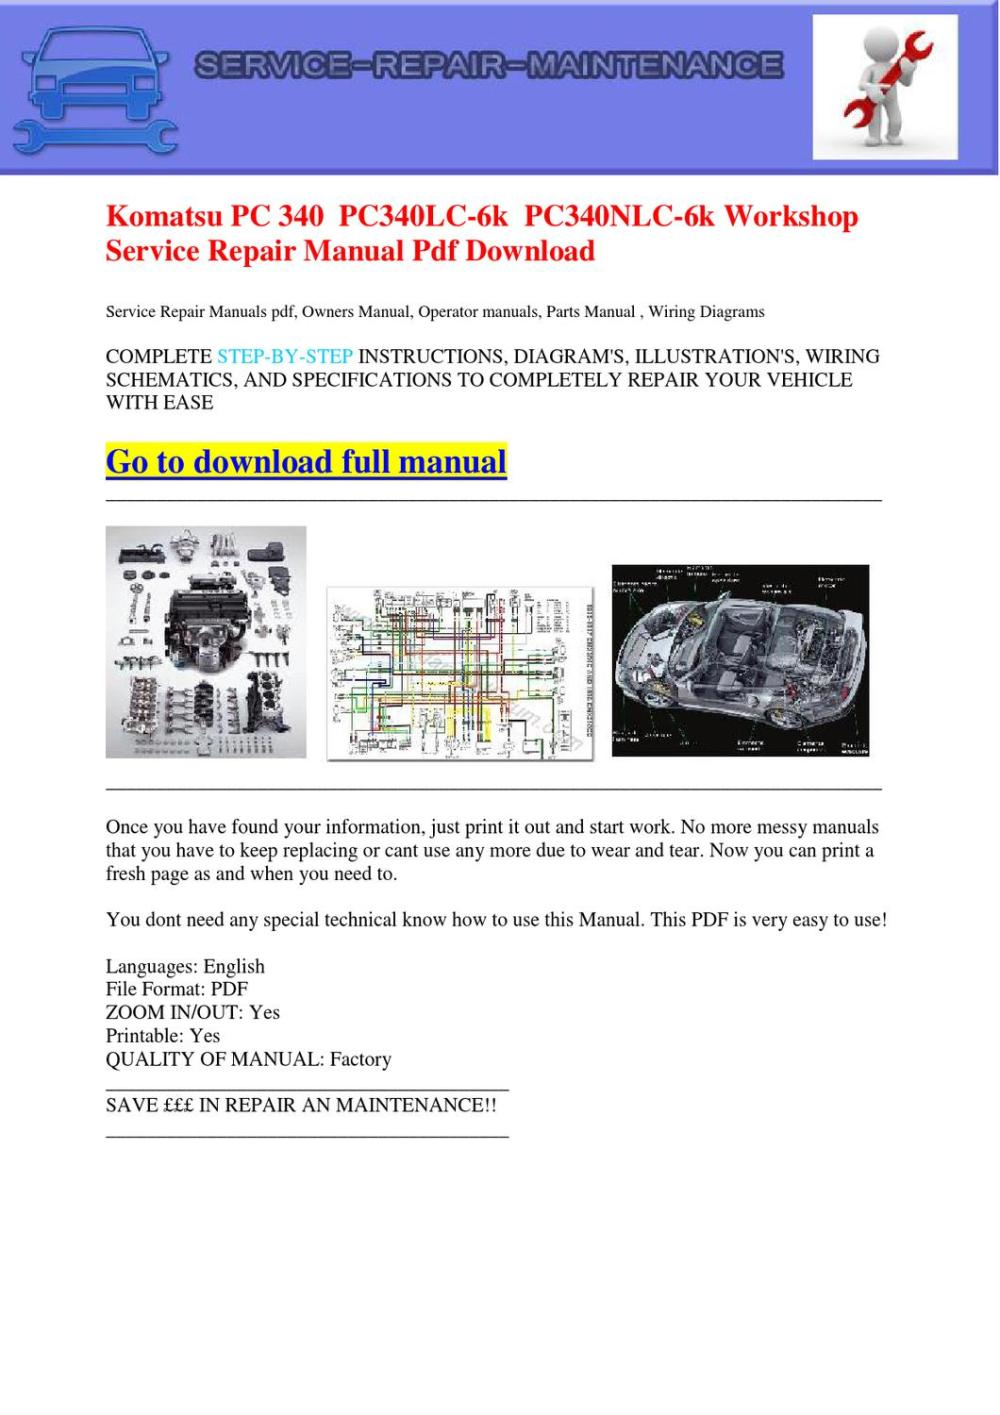 medium resolution of komatsu pc 340 pc340lc 6k pc340nlc 6k workshop service repair manual pdf download